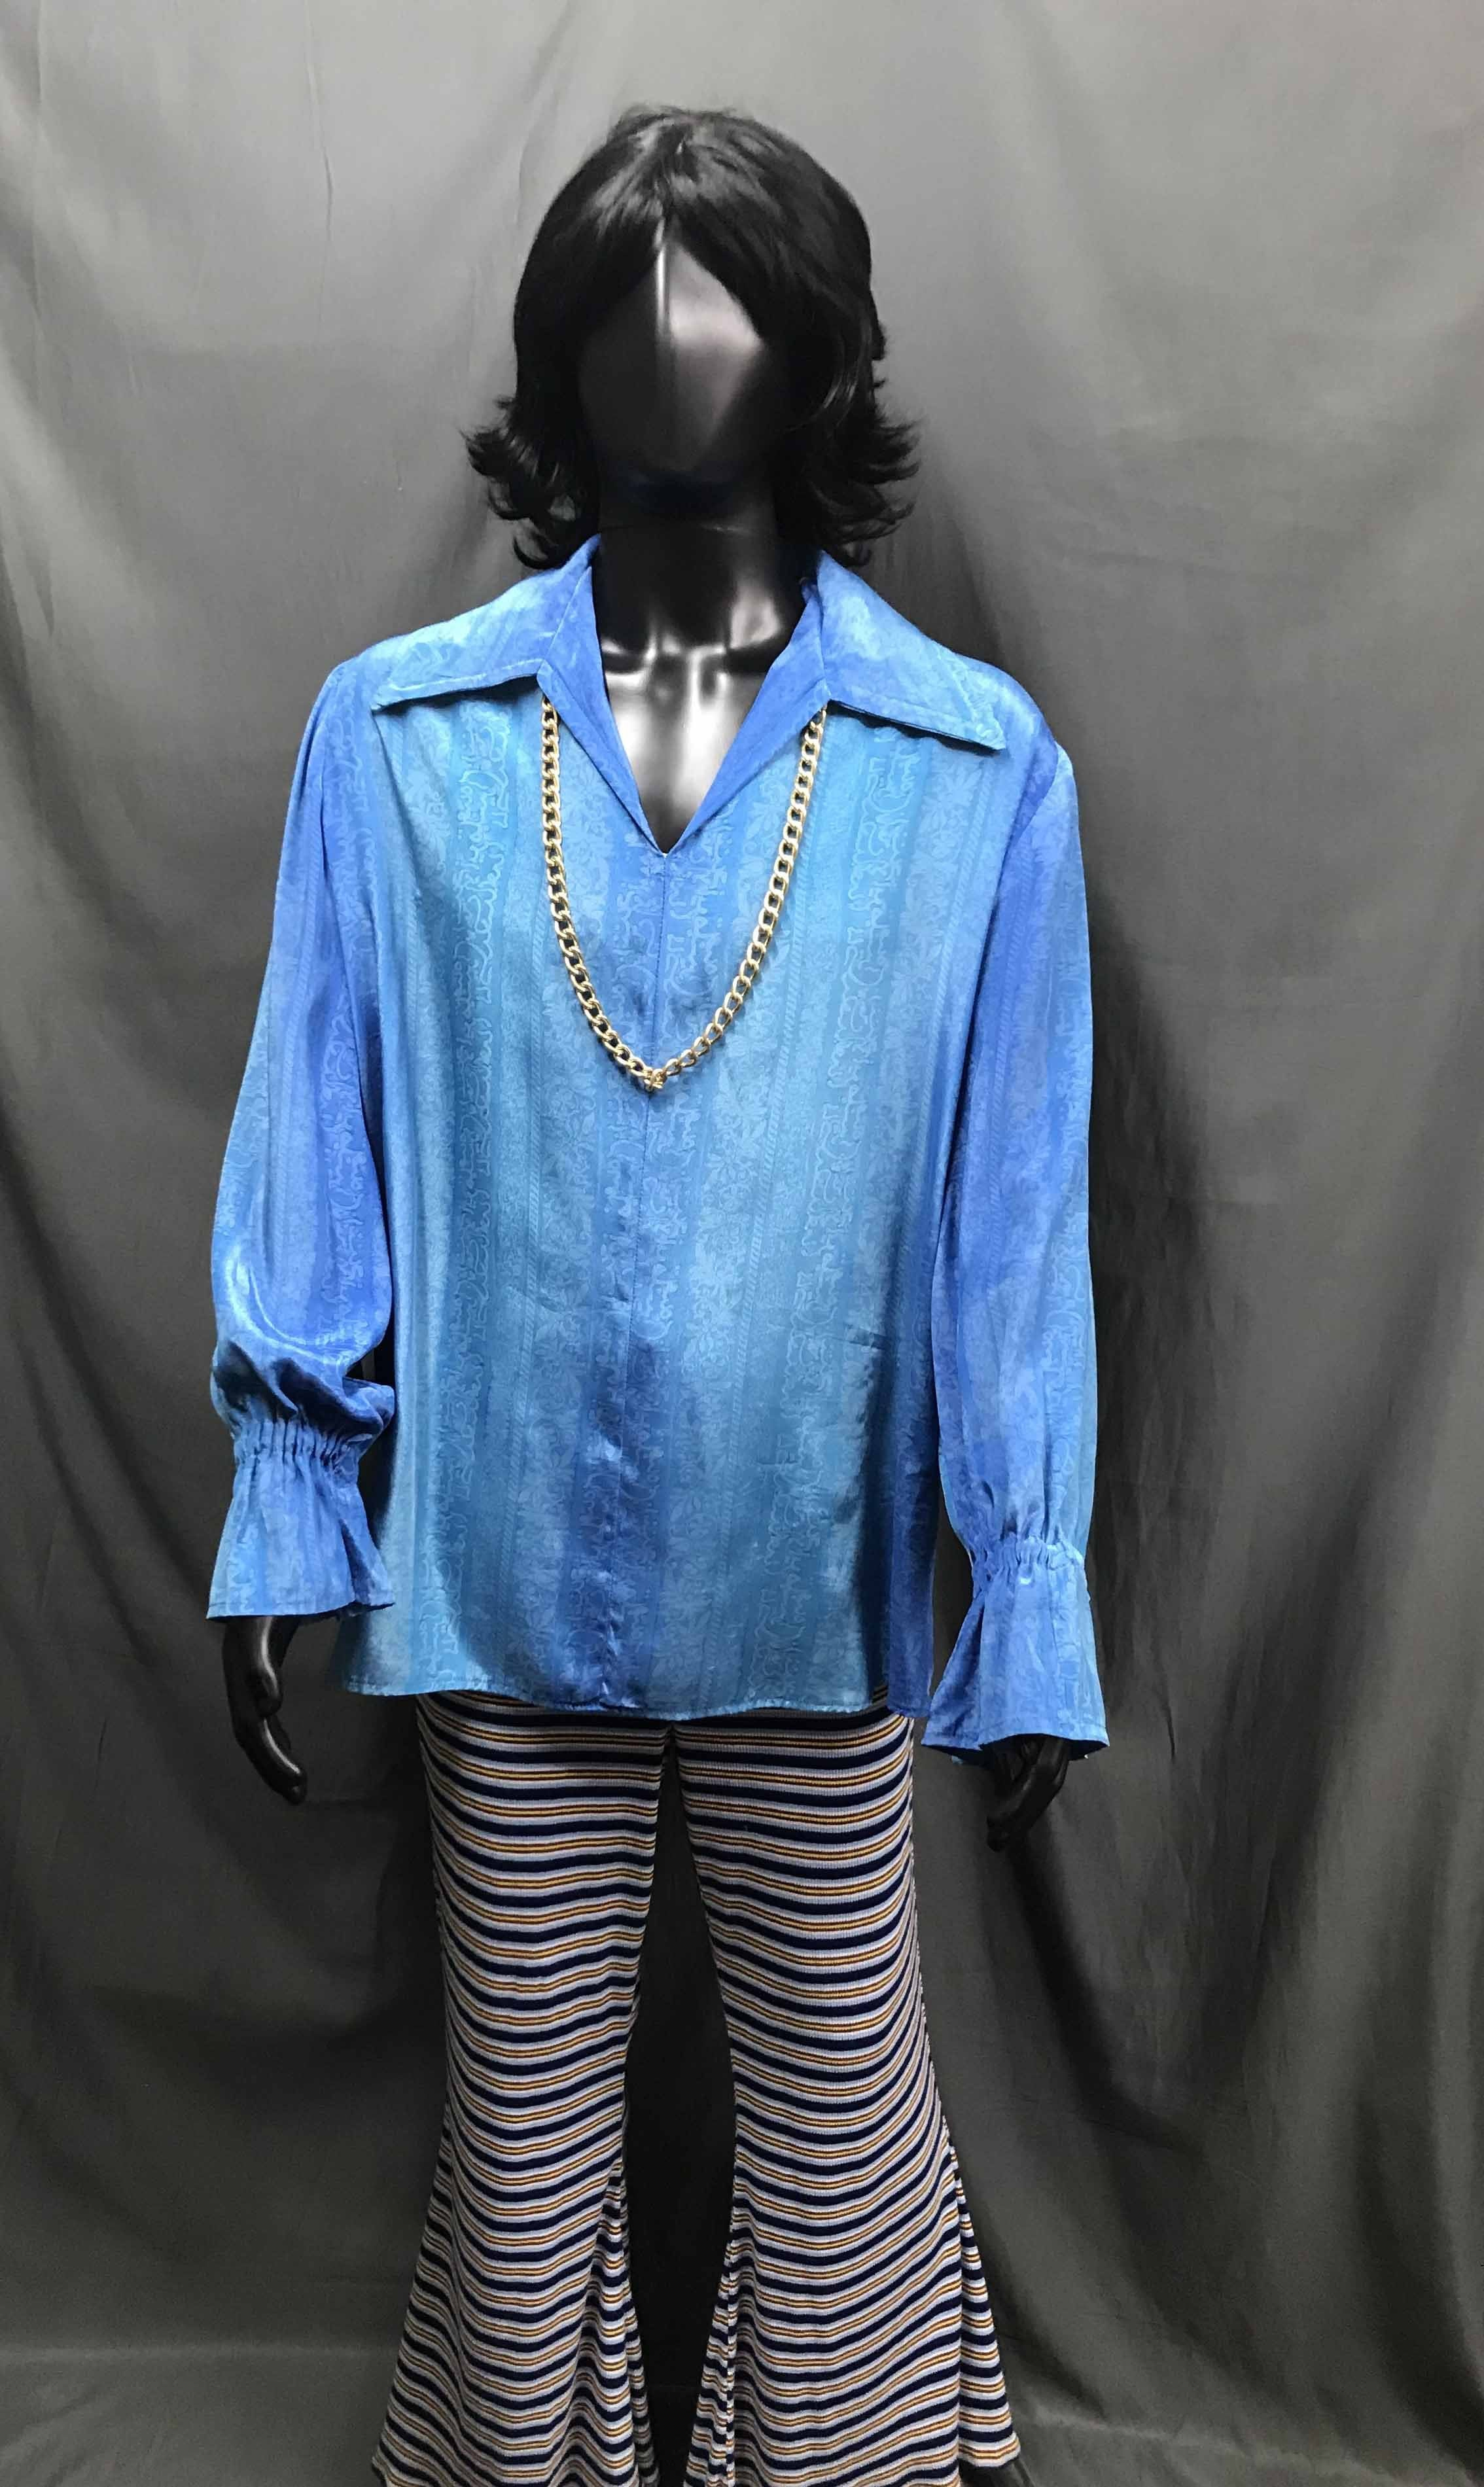 60-70s Mens Disco Costume - Light Blue Long Sleeve Shirt and Pattern Flares- Hire - The Costume Company | Fancy Dress Costumes Hire and Purchase Brisbane and Australia